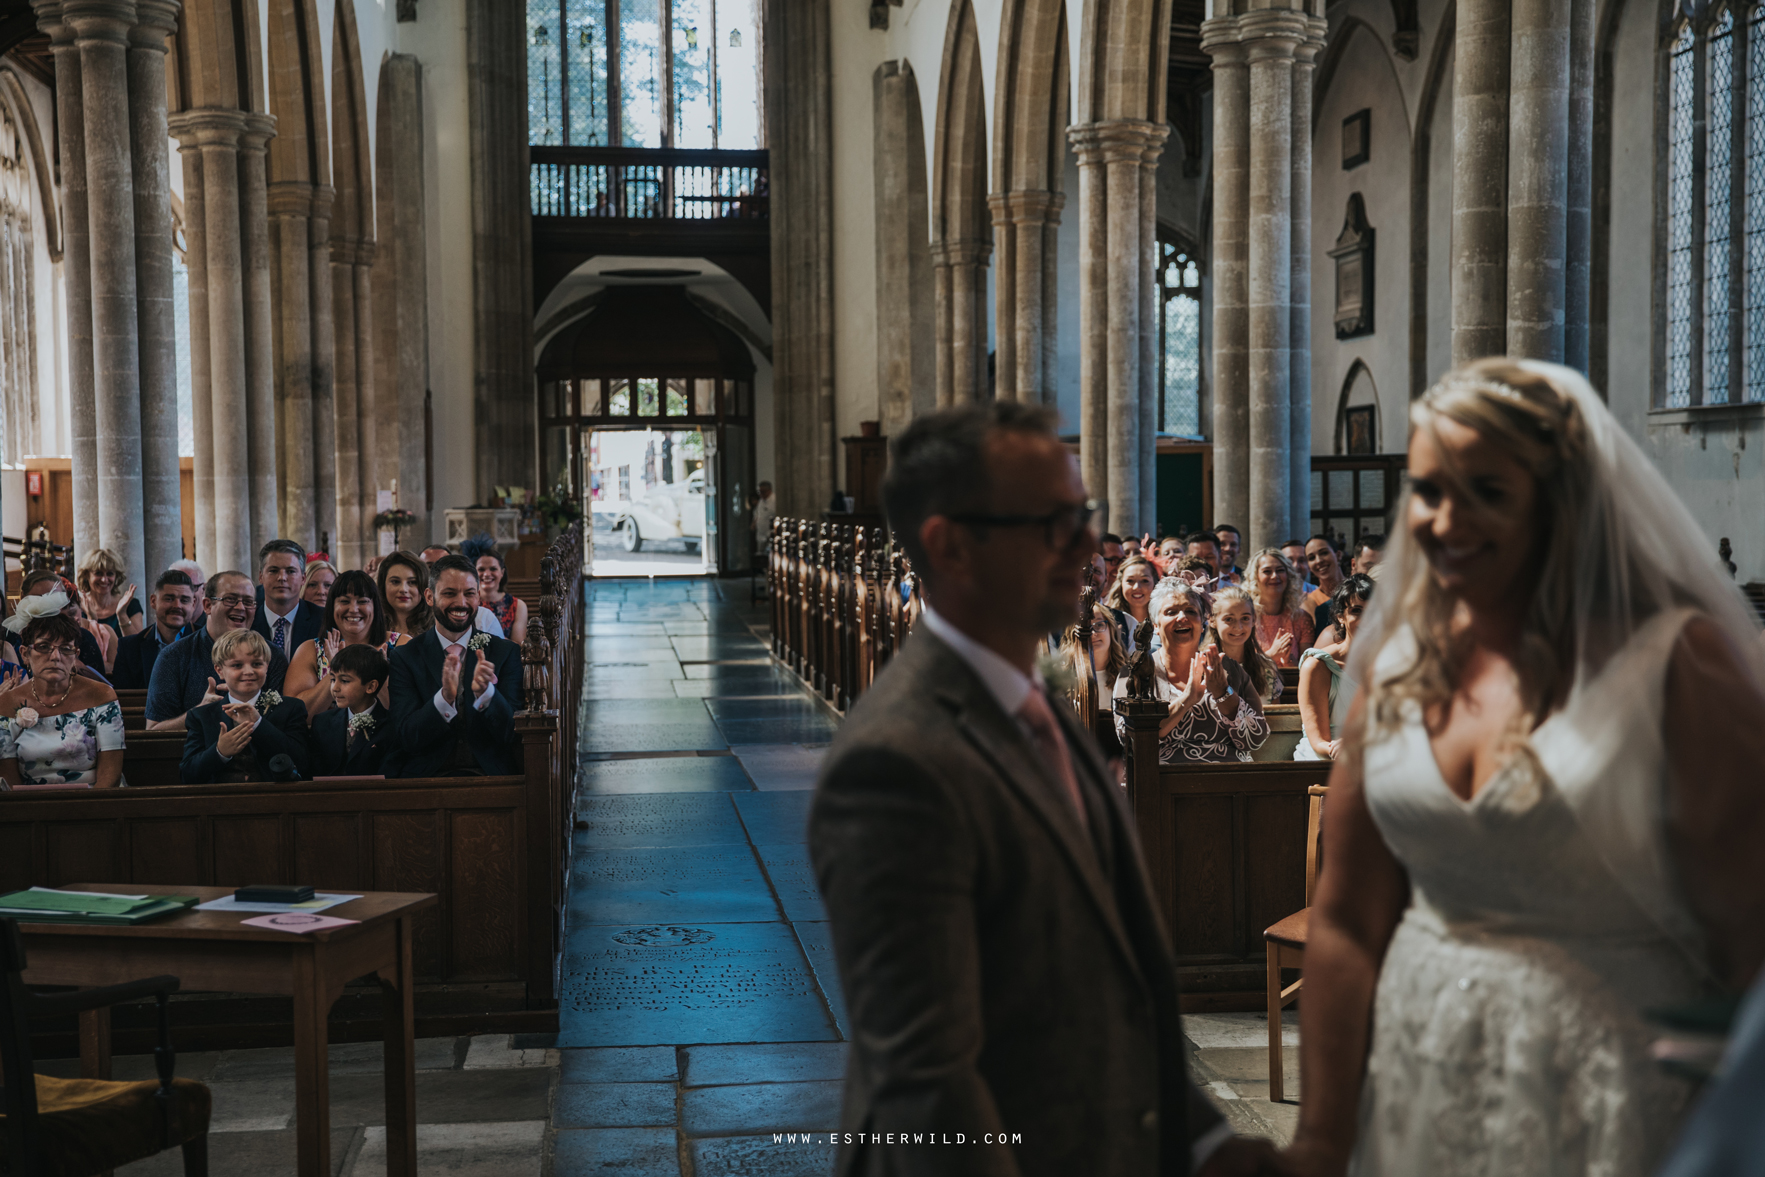 Swaffham_Wedding_Castle_Acre_Norfolk_Esther_Wild_Photographer_Wedding_Photography_3R8A0859.jpg